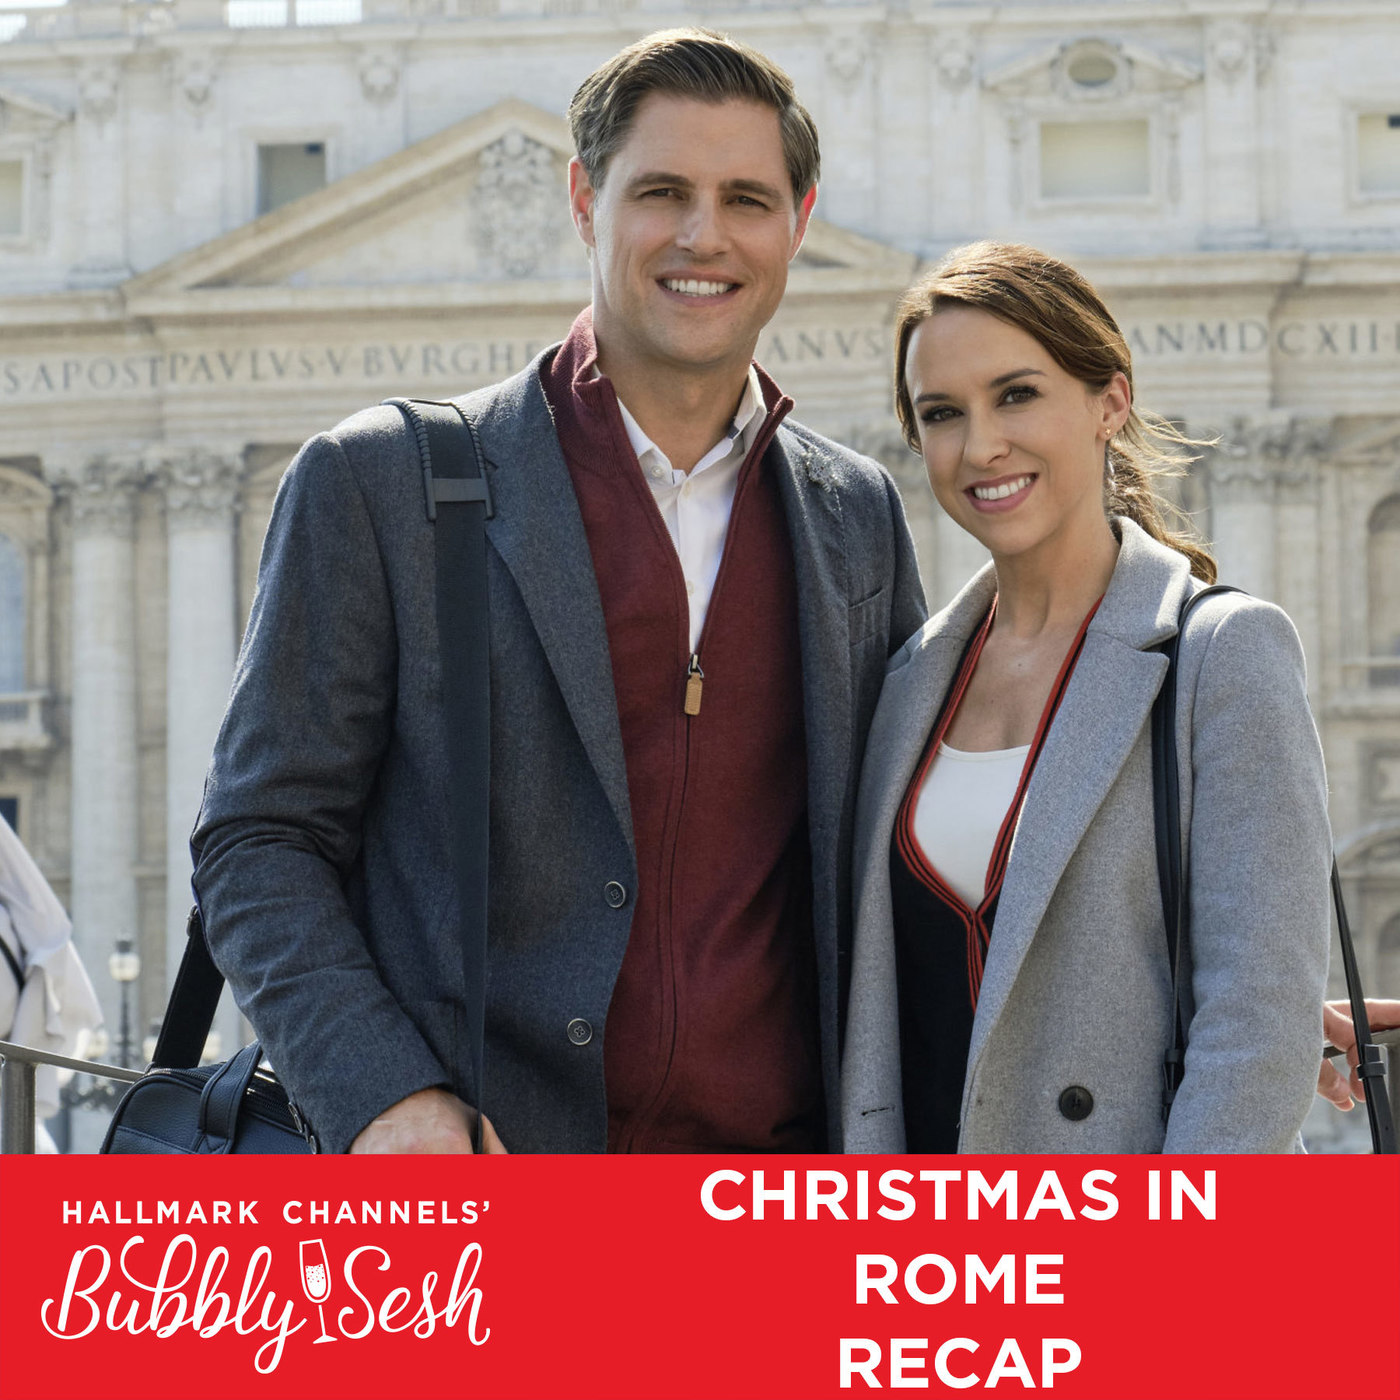 Christmas in Rome Recap